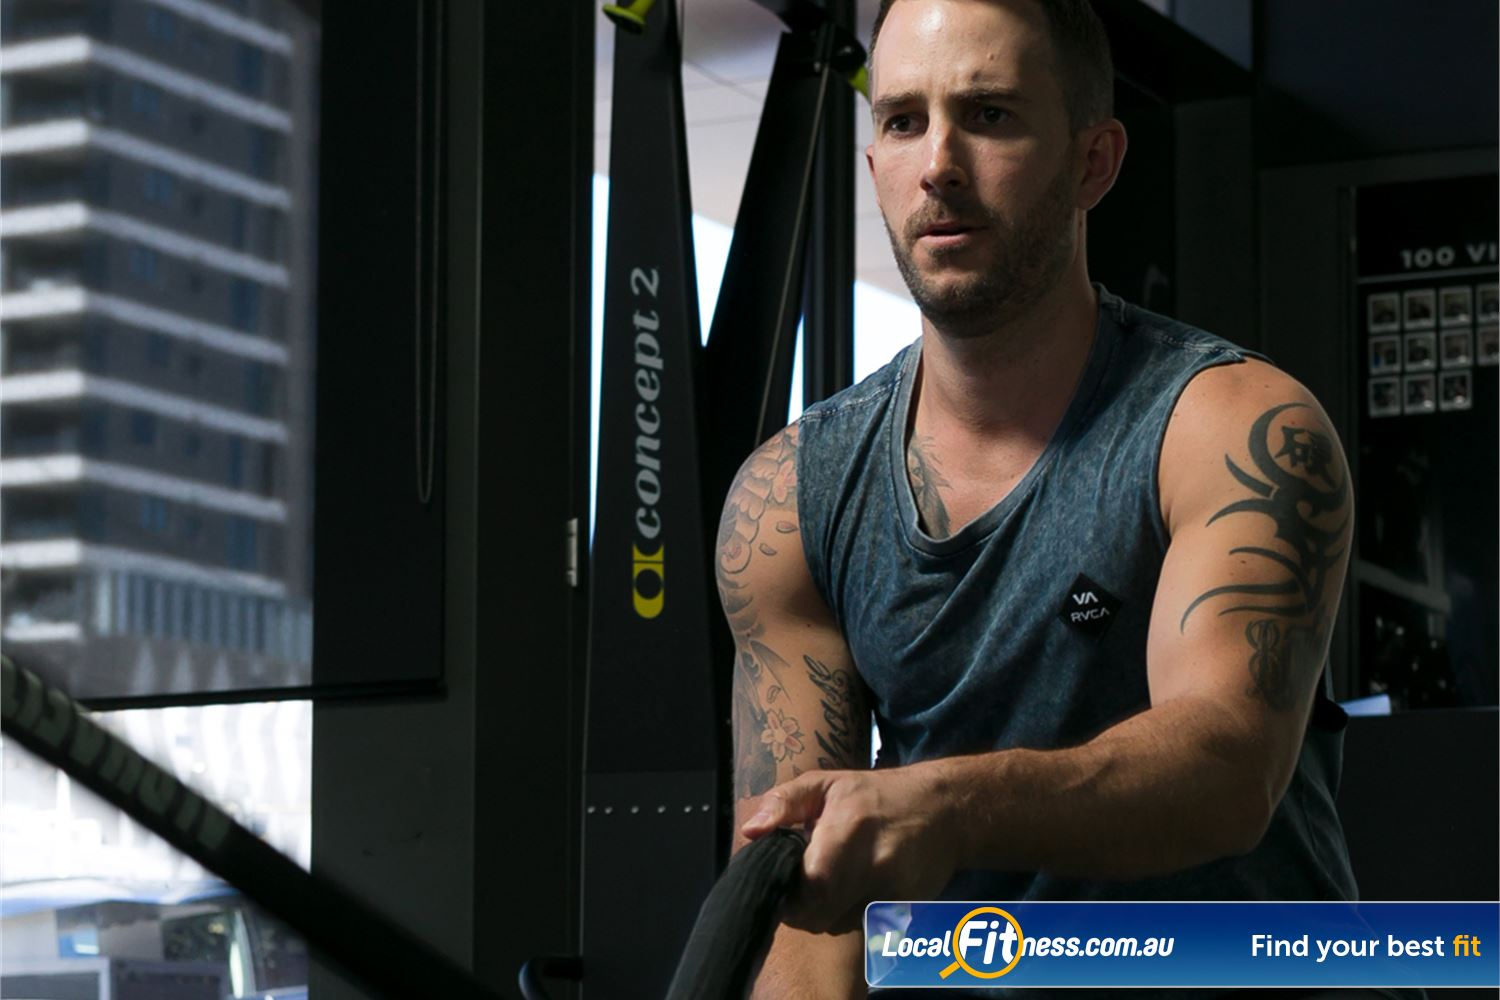 12 Round Fitness Near Glen Iris Sports based cardio activities will have you training like an athlete.